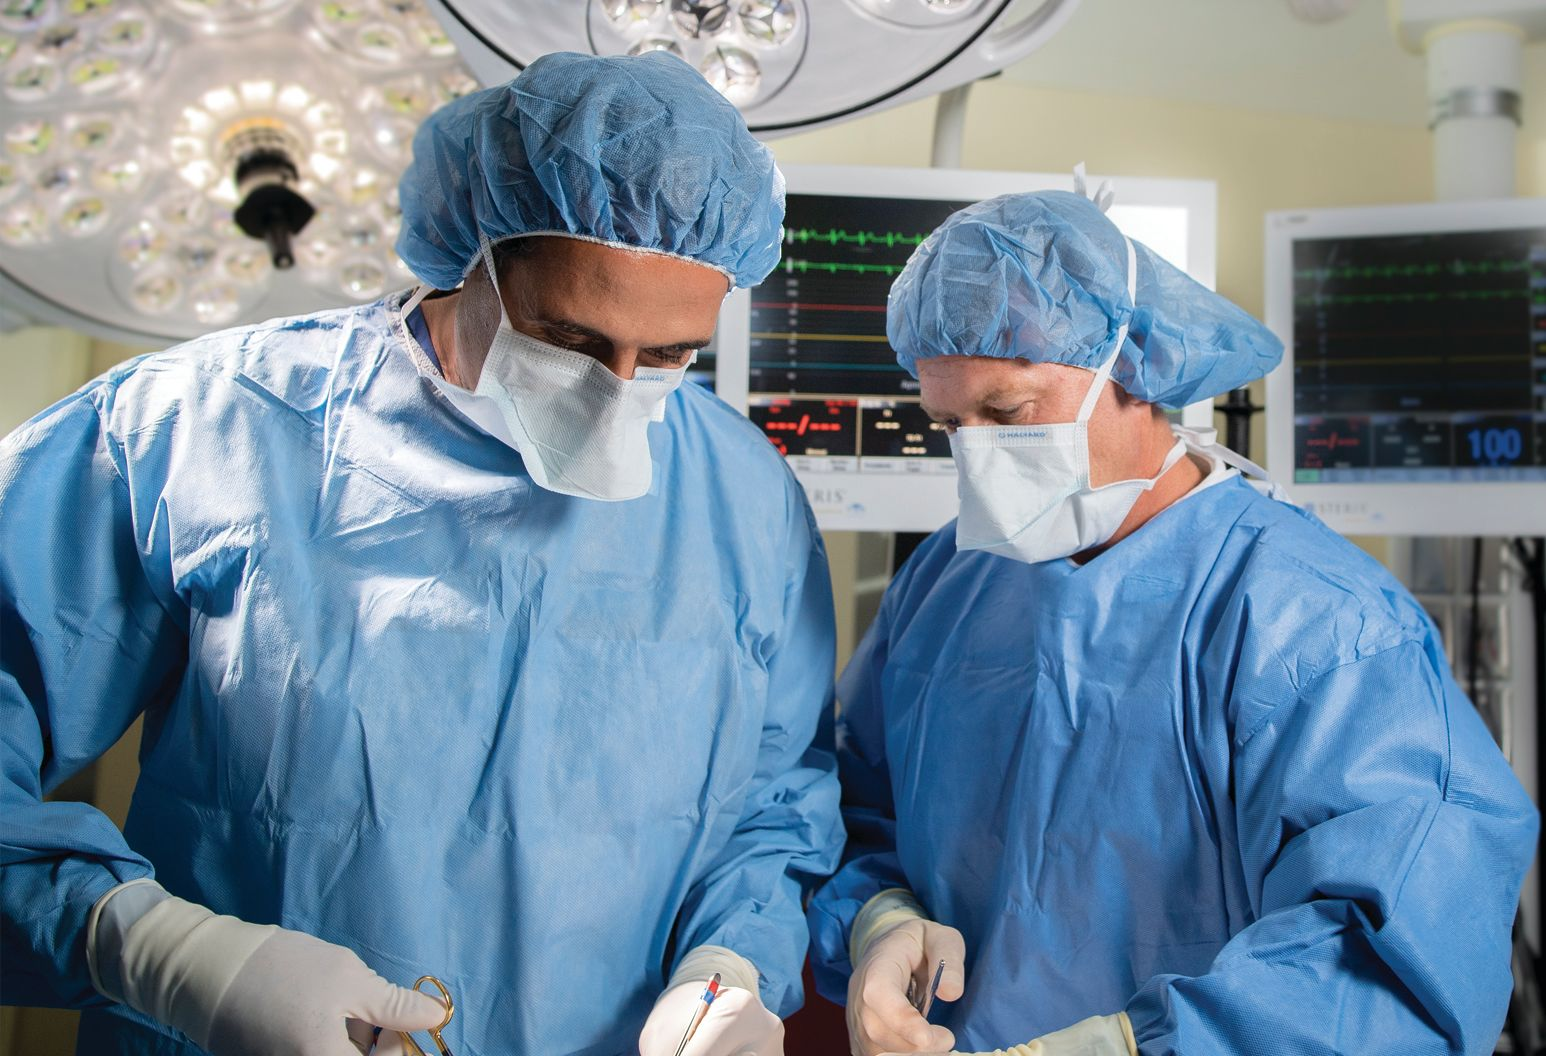 Two surgeons stand in operating room with masks over their mouths and equipment in background.